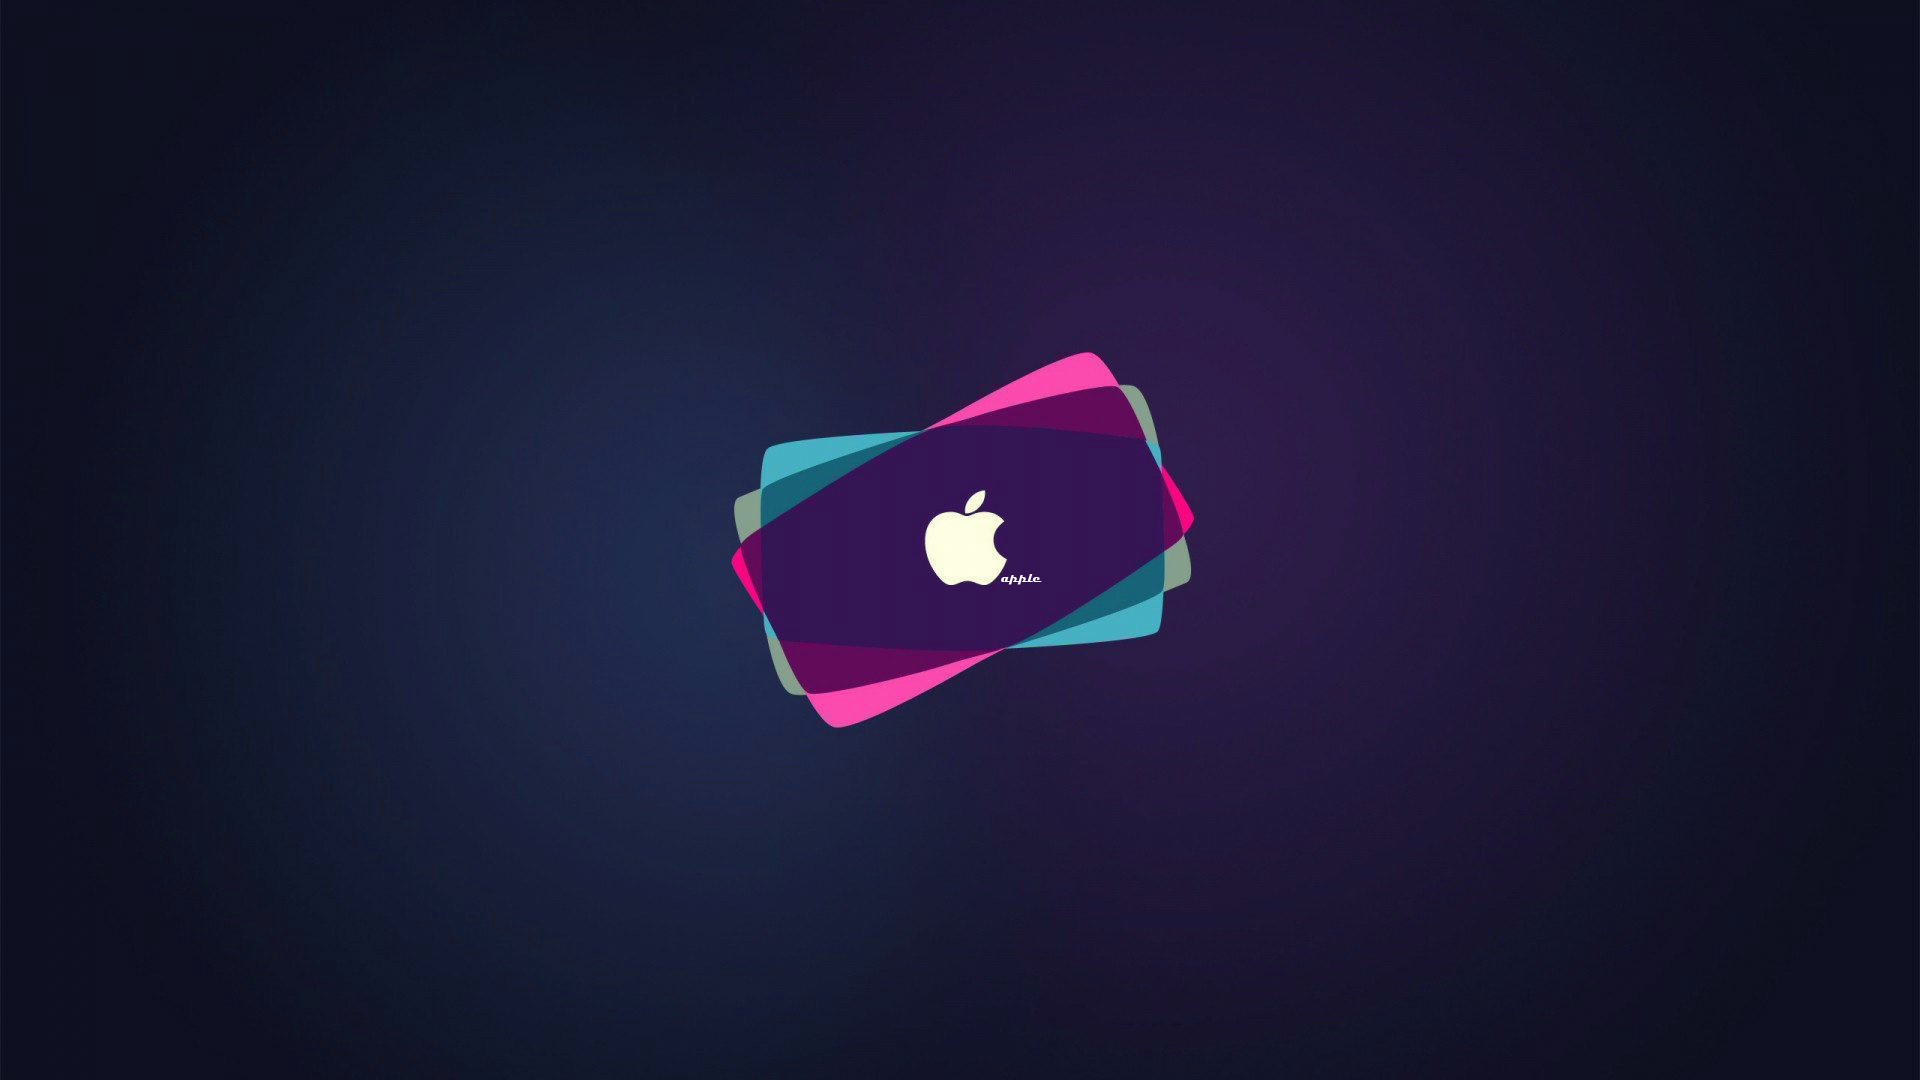 Mac Os X 3d Abstract Wallpapers Wallpaper